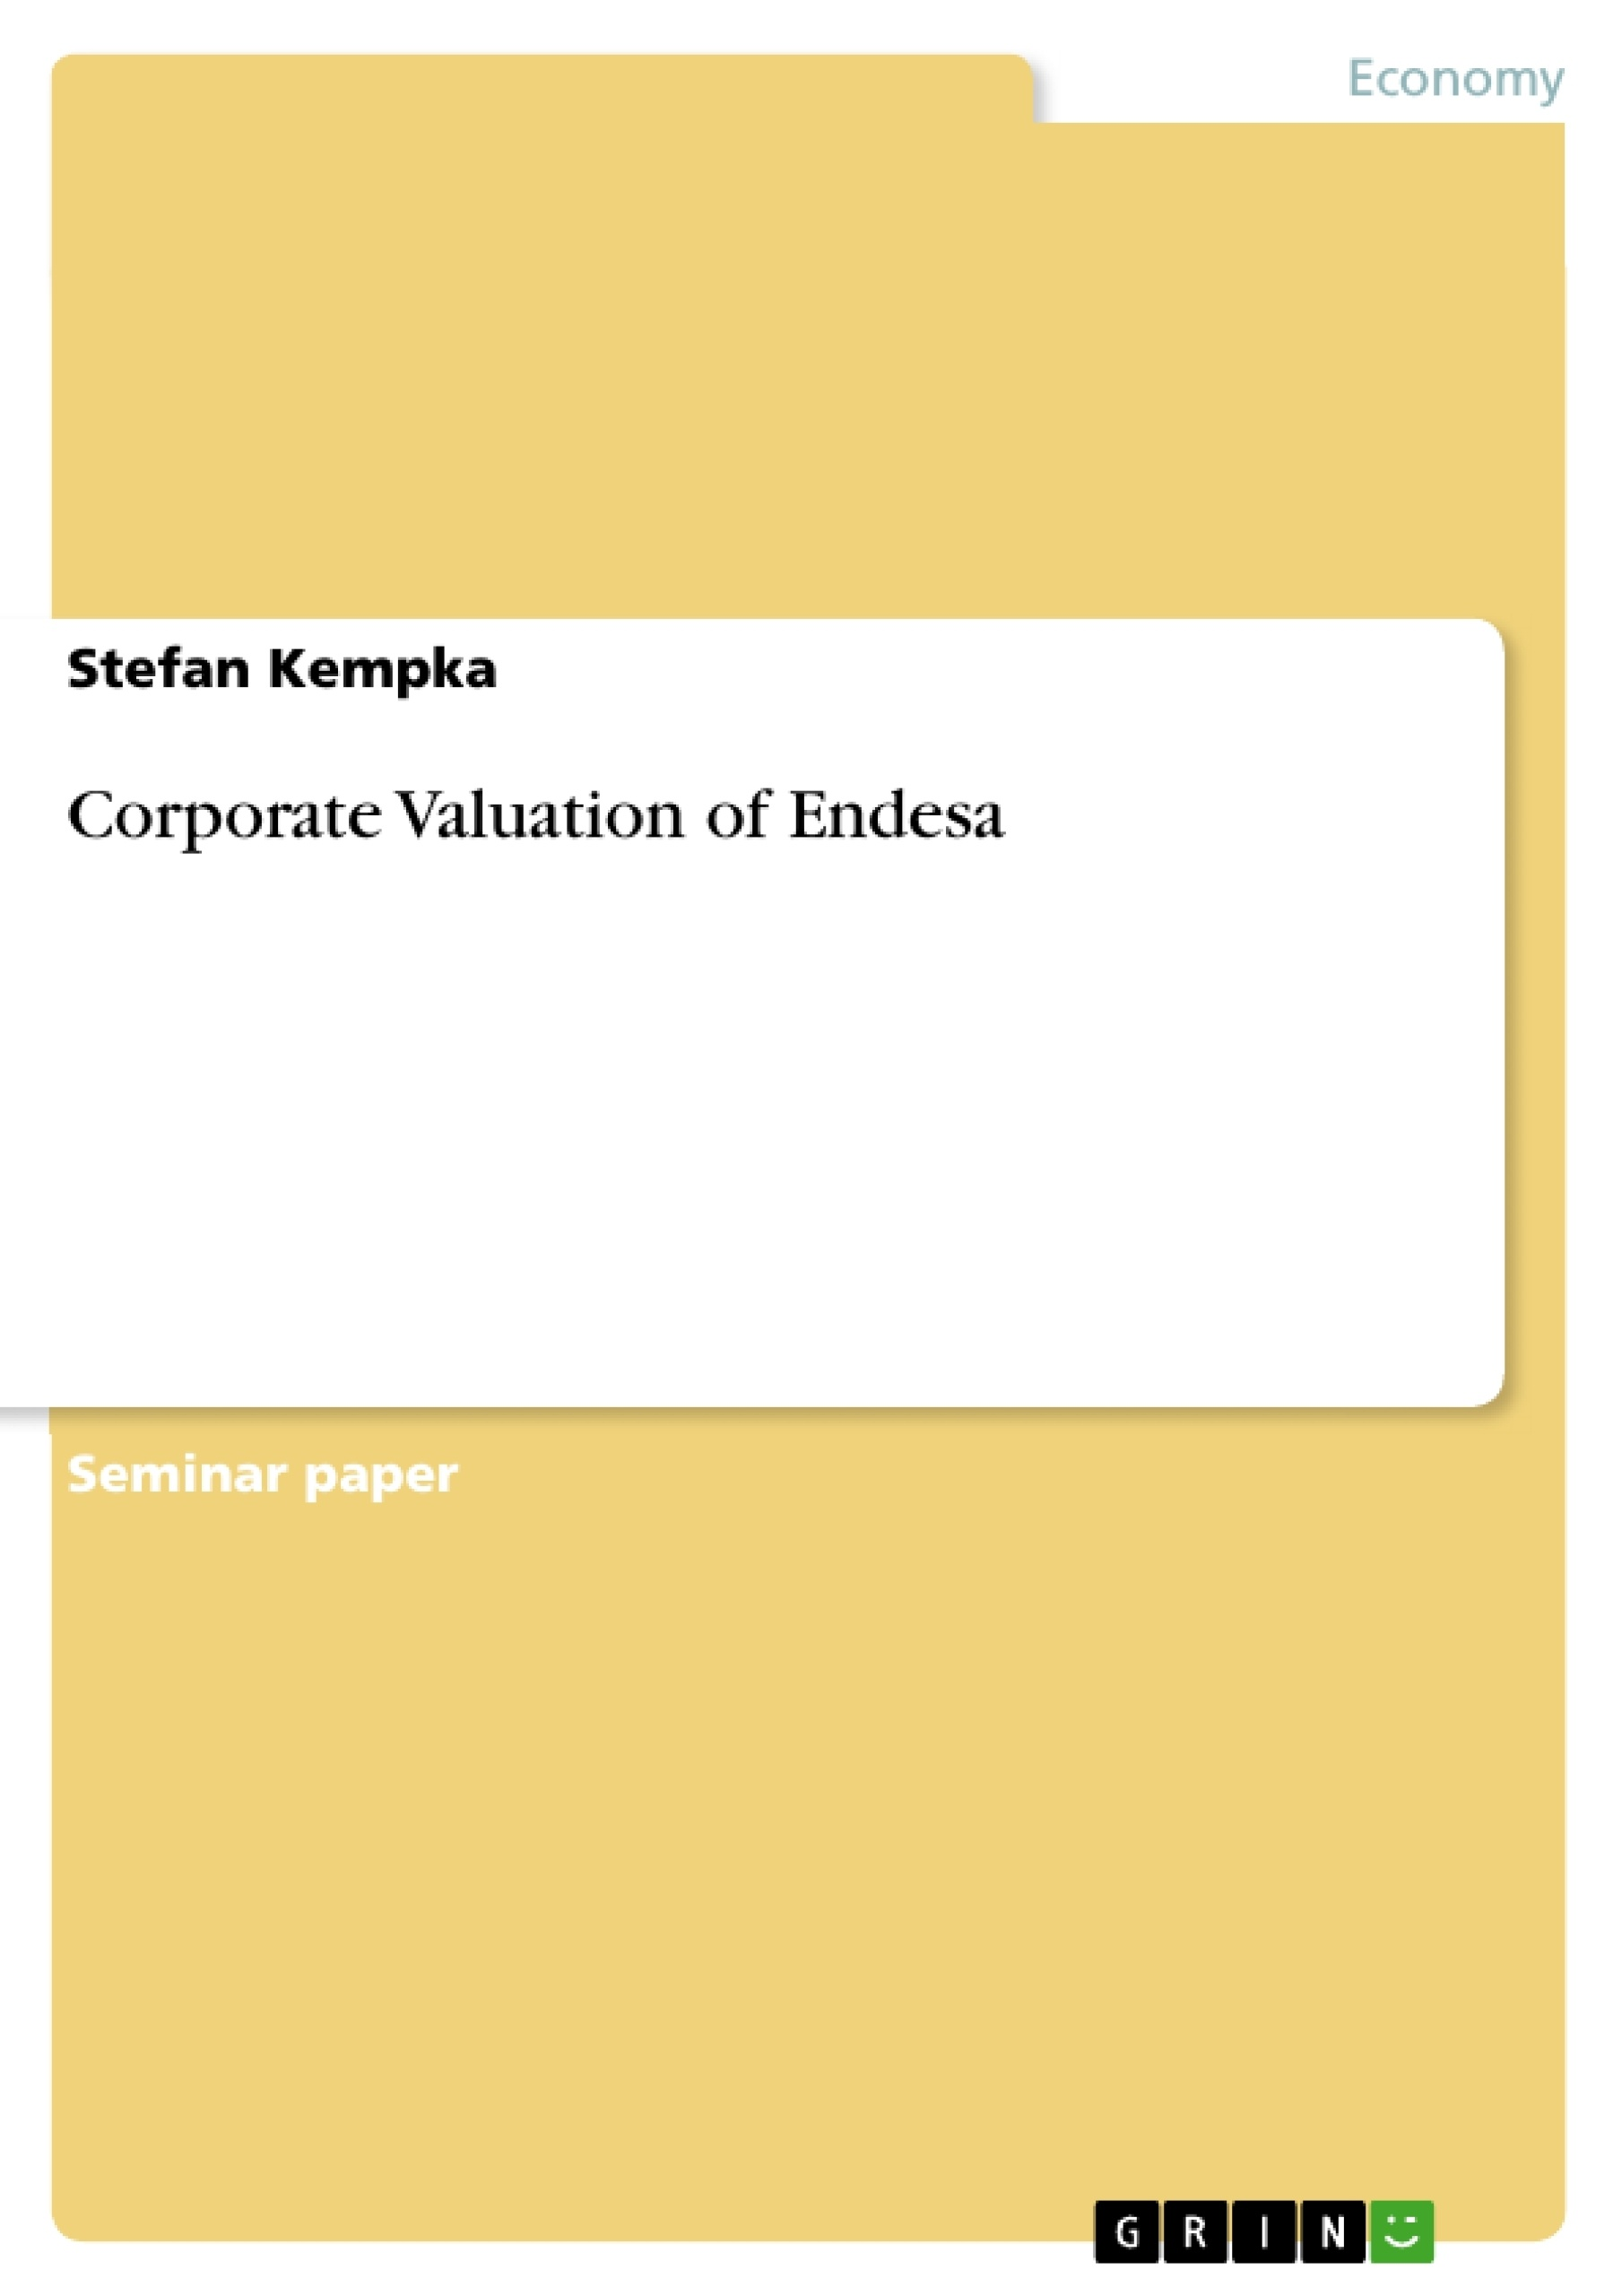 Title: Corporate Valuation of Endesa